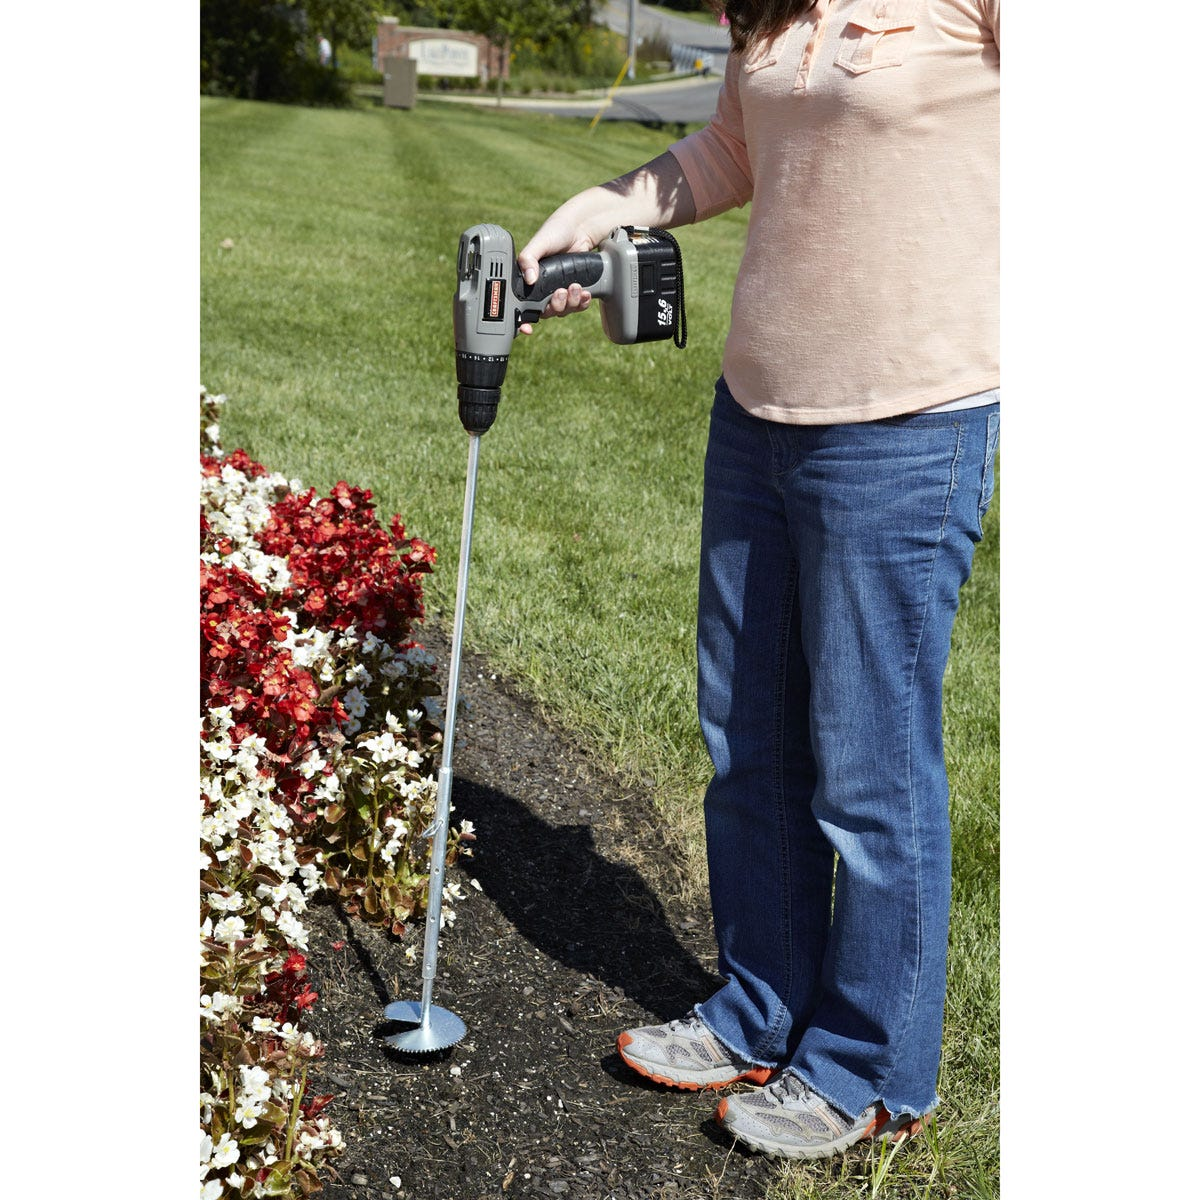 Garden and Yard Auger Garden Lawn Care from Sportys Tool Shop